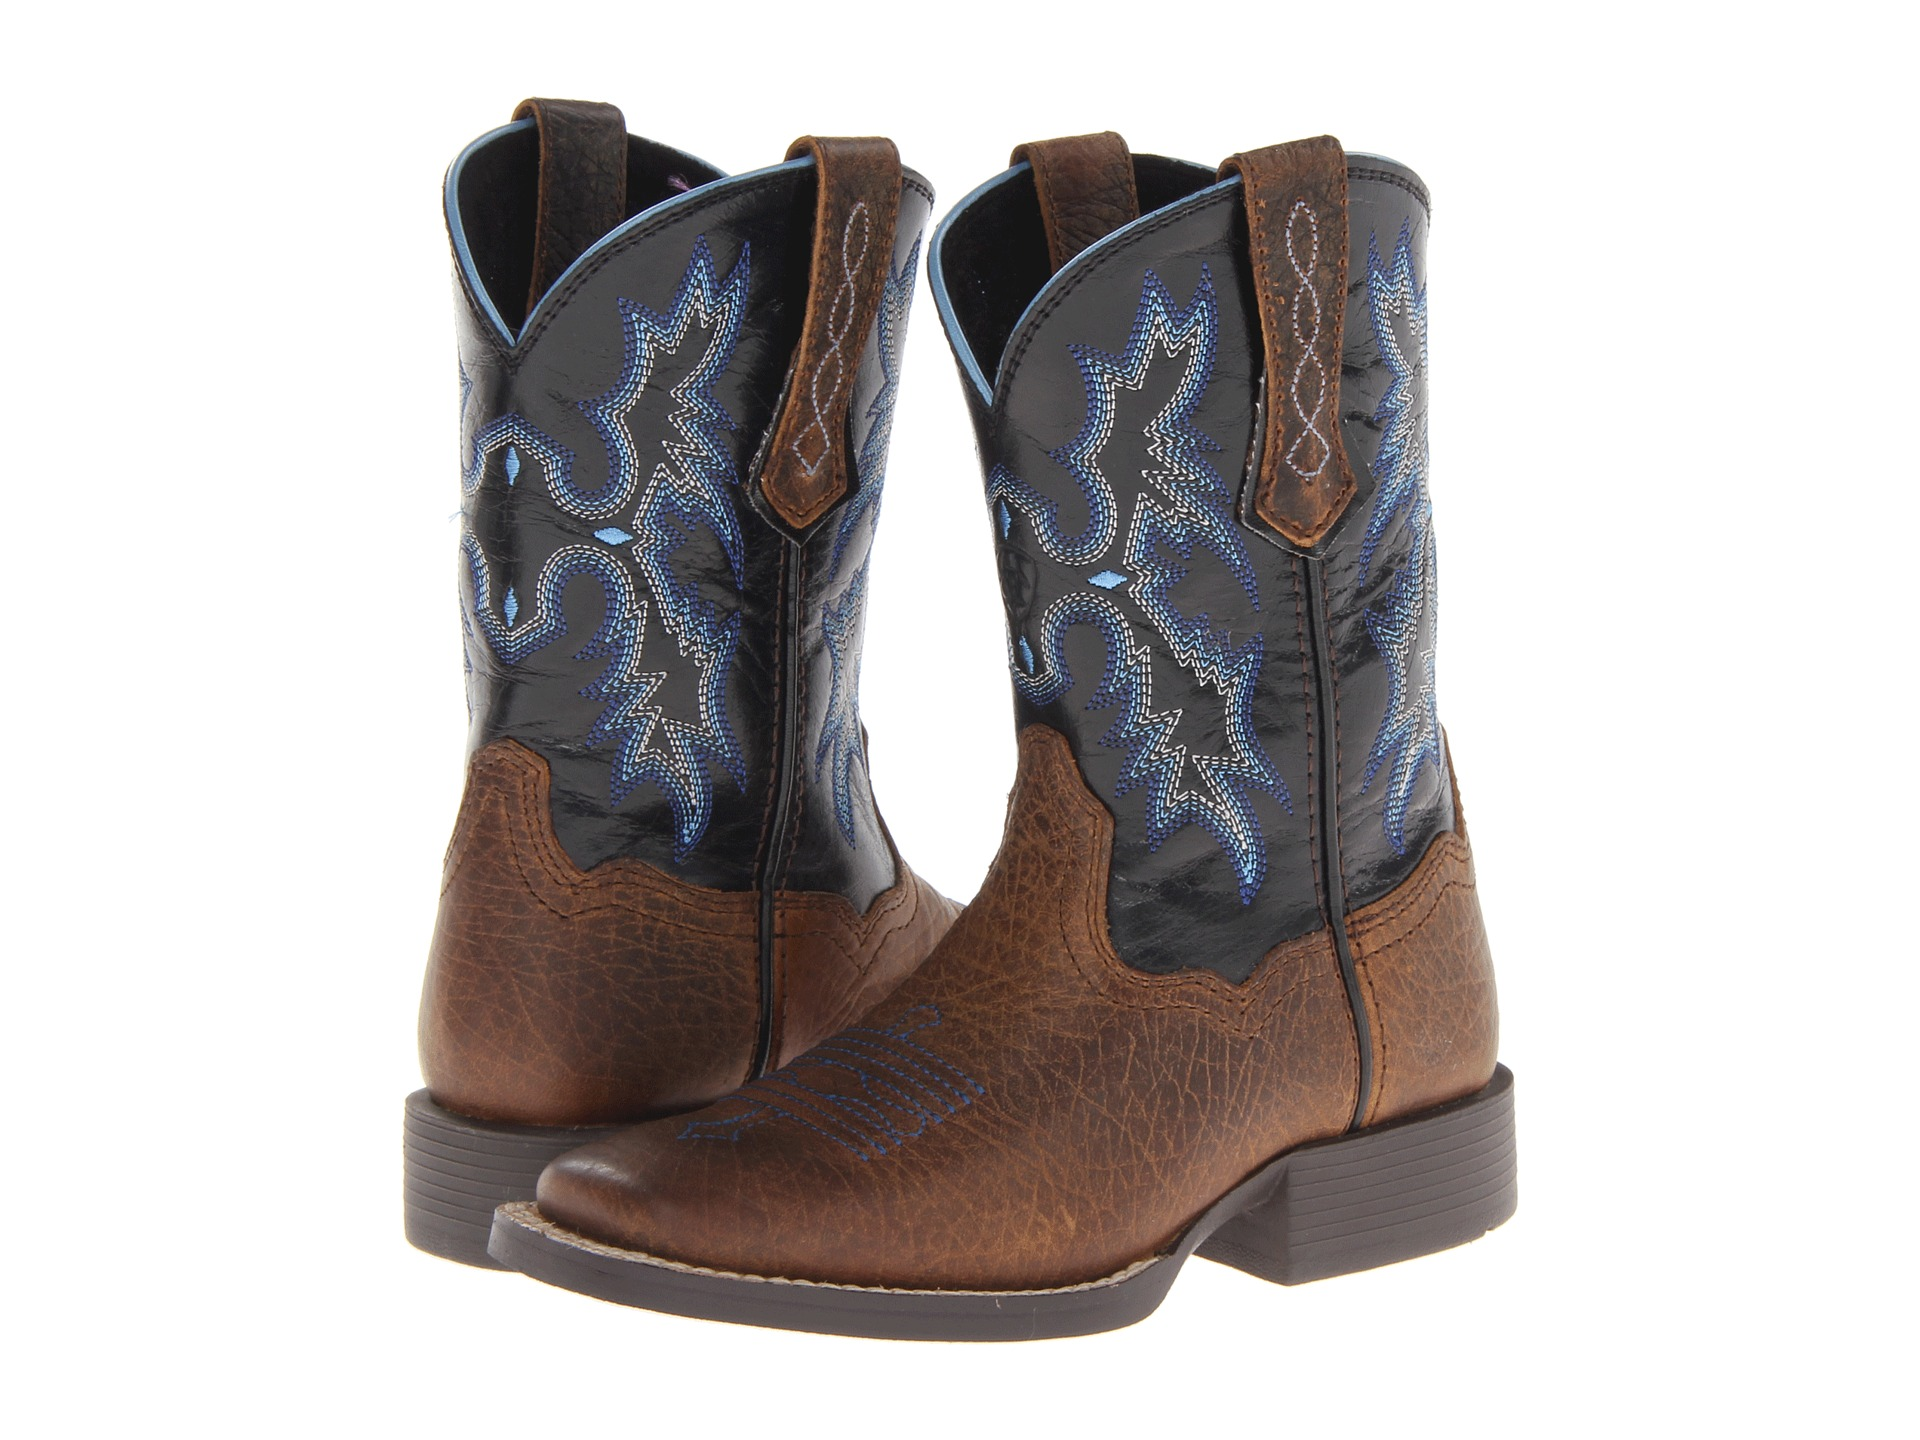 Ariat Shoes Boys | Shipped Free at Zappos